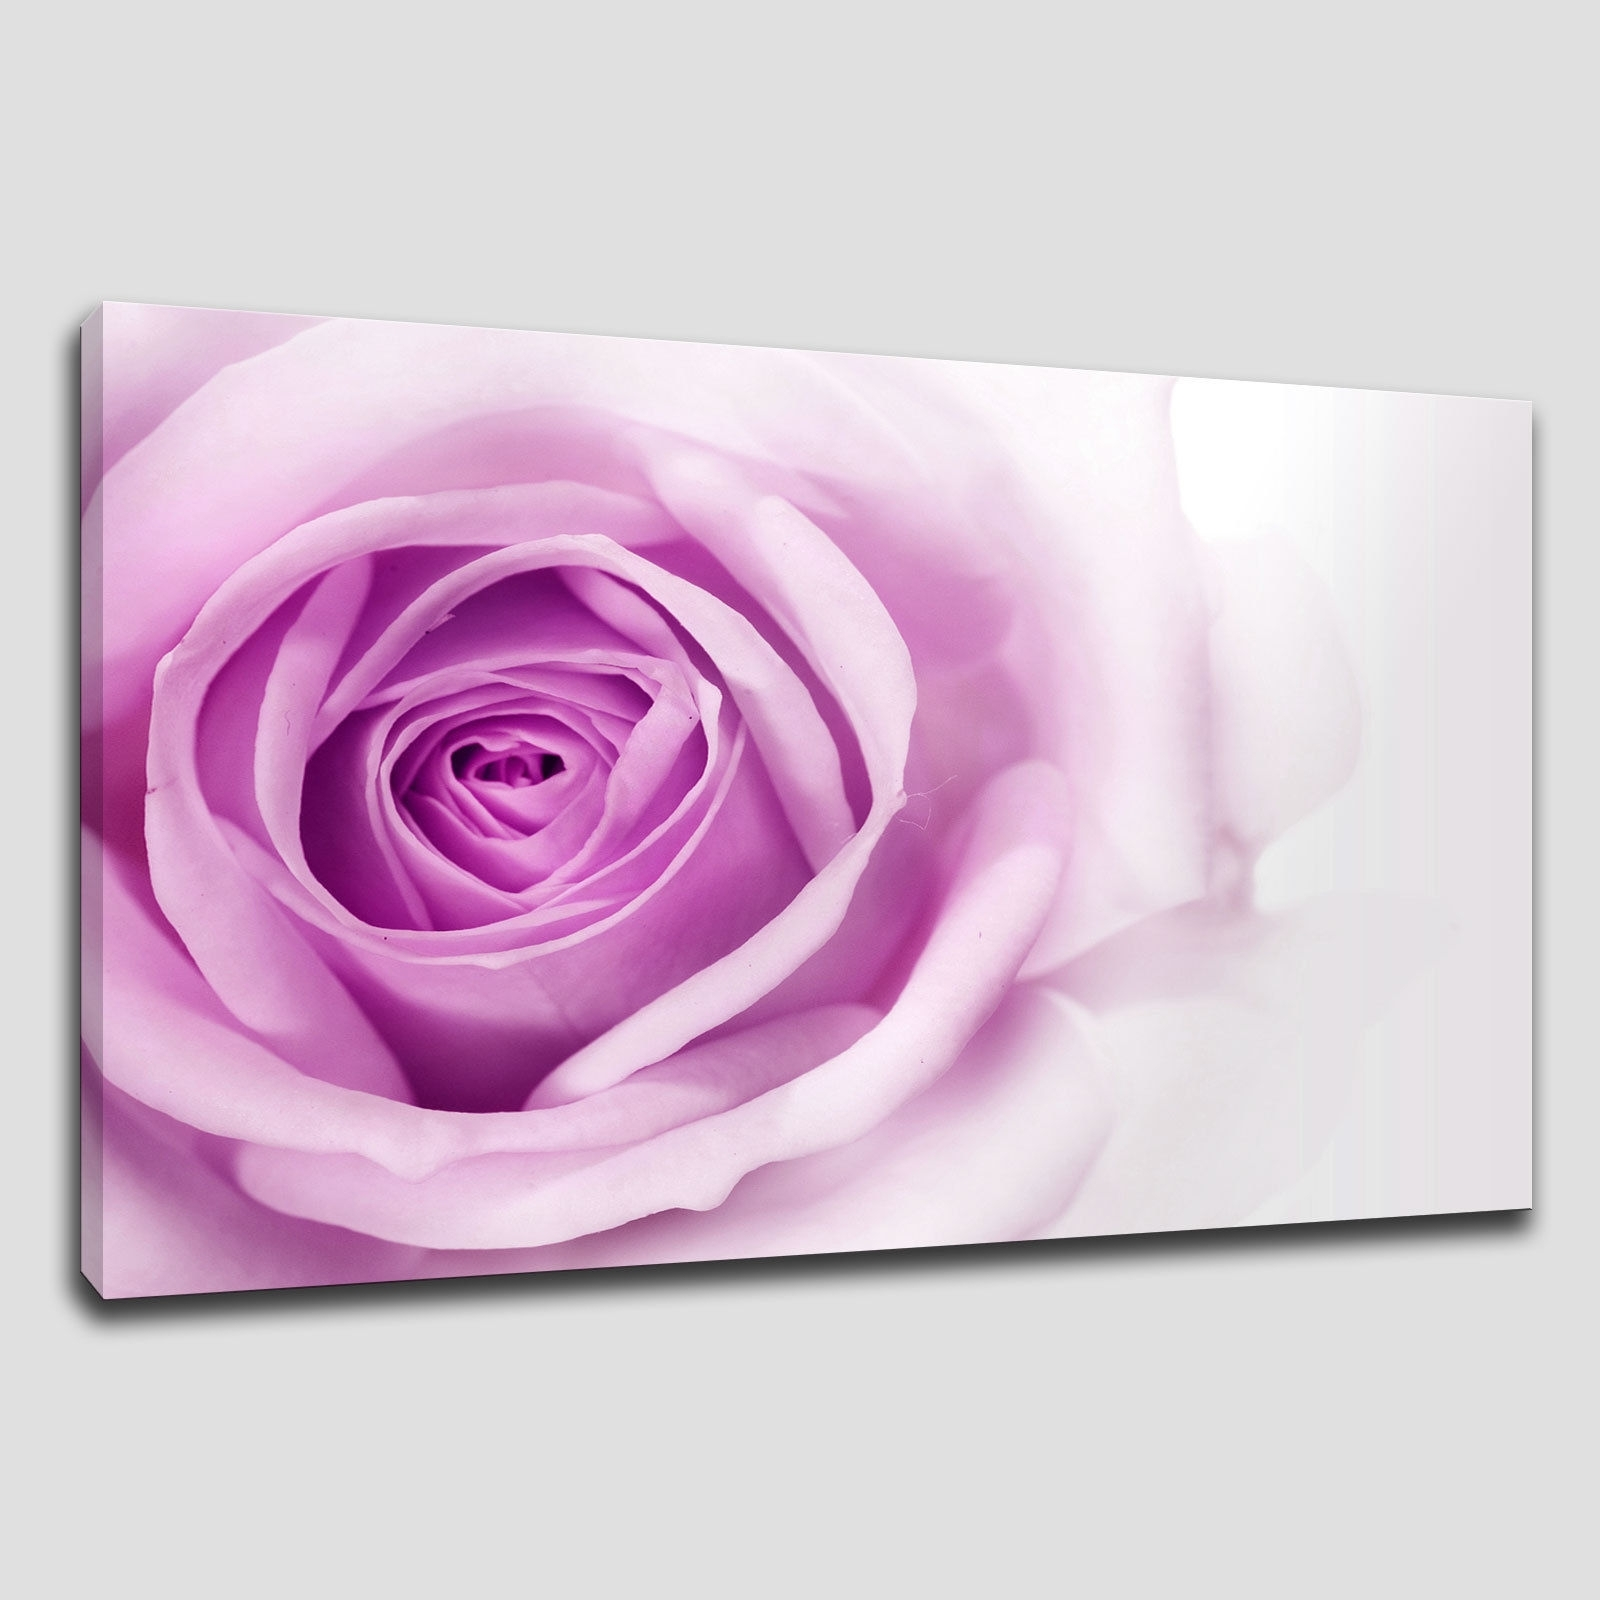 Newest Wall Art Designs: Decor Red Rose Canvas Wall Art Large Oil Throughout Roses Canvas Wall Art (View 9 of 15)